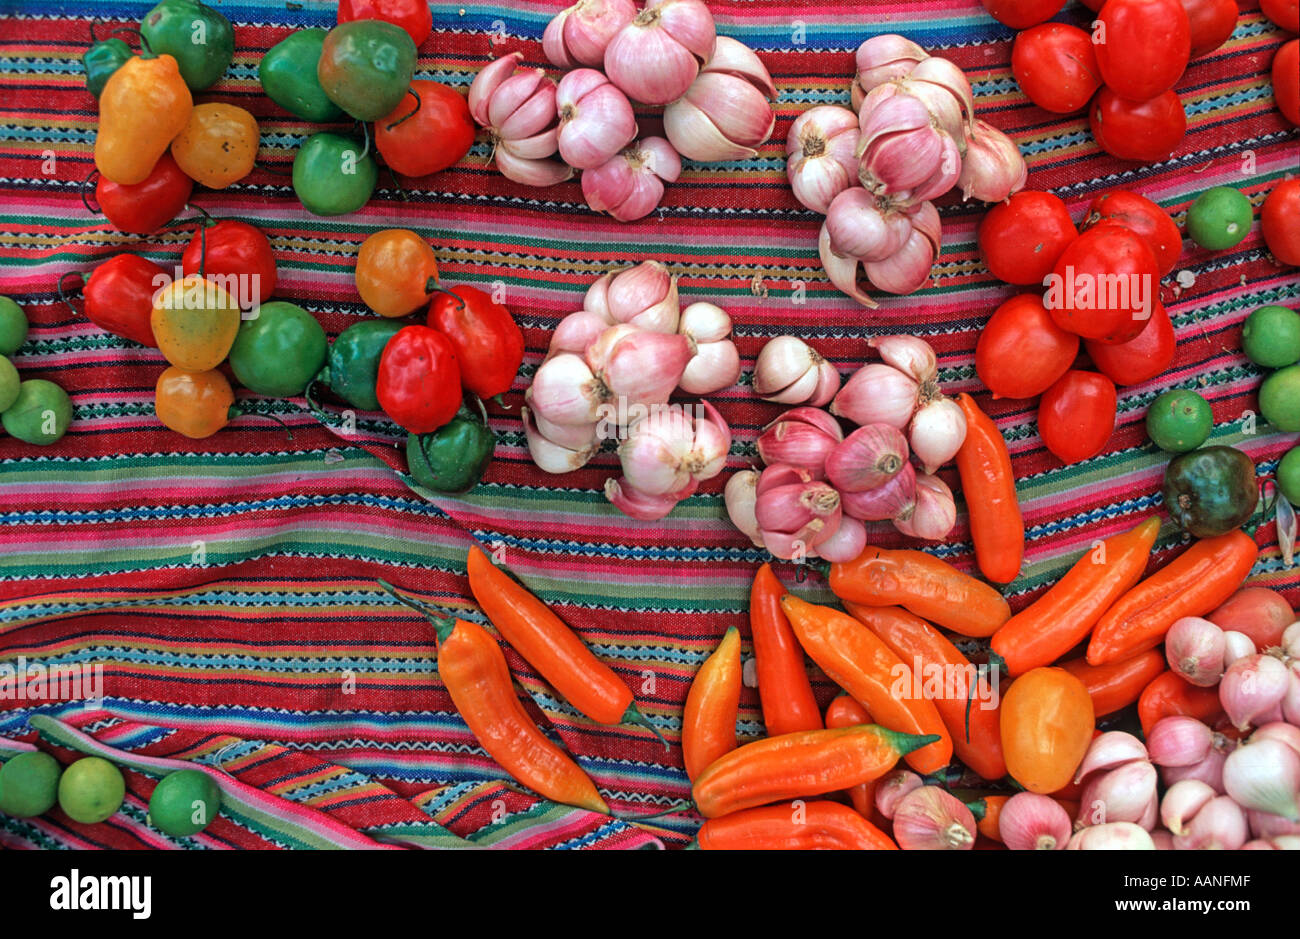 Selection of garlic citrus fruit chilli peppers and other capsicums laid out on a colourful woven Peruvian textile Huaraz N Peru - Stock Image